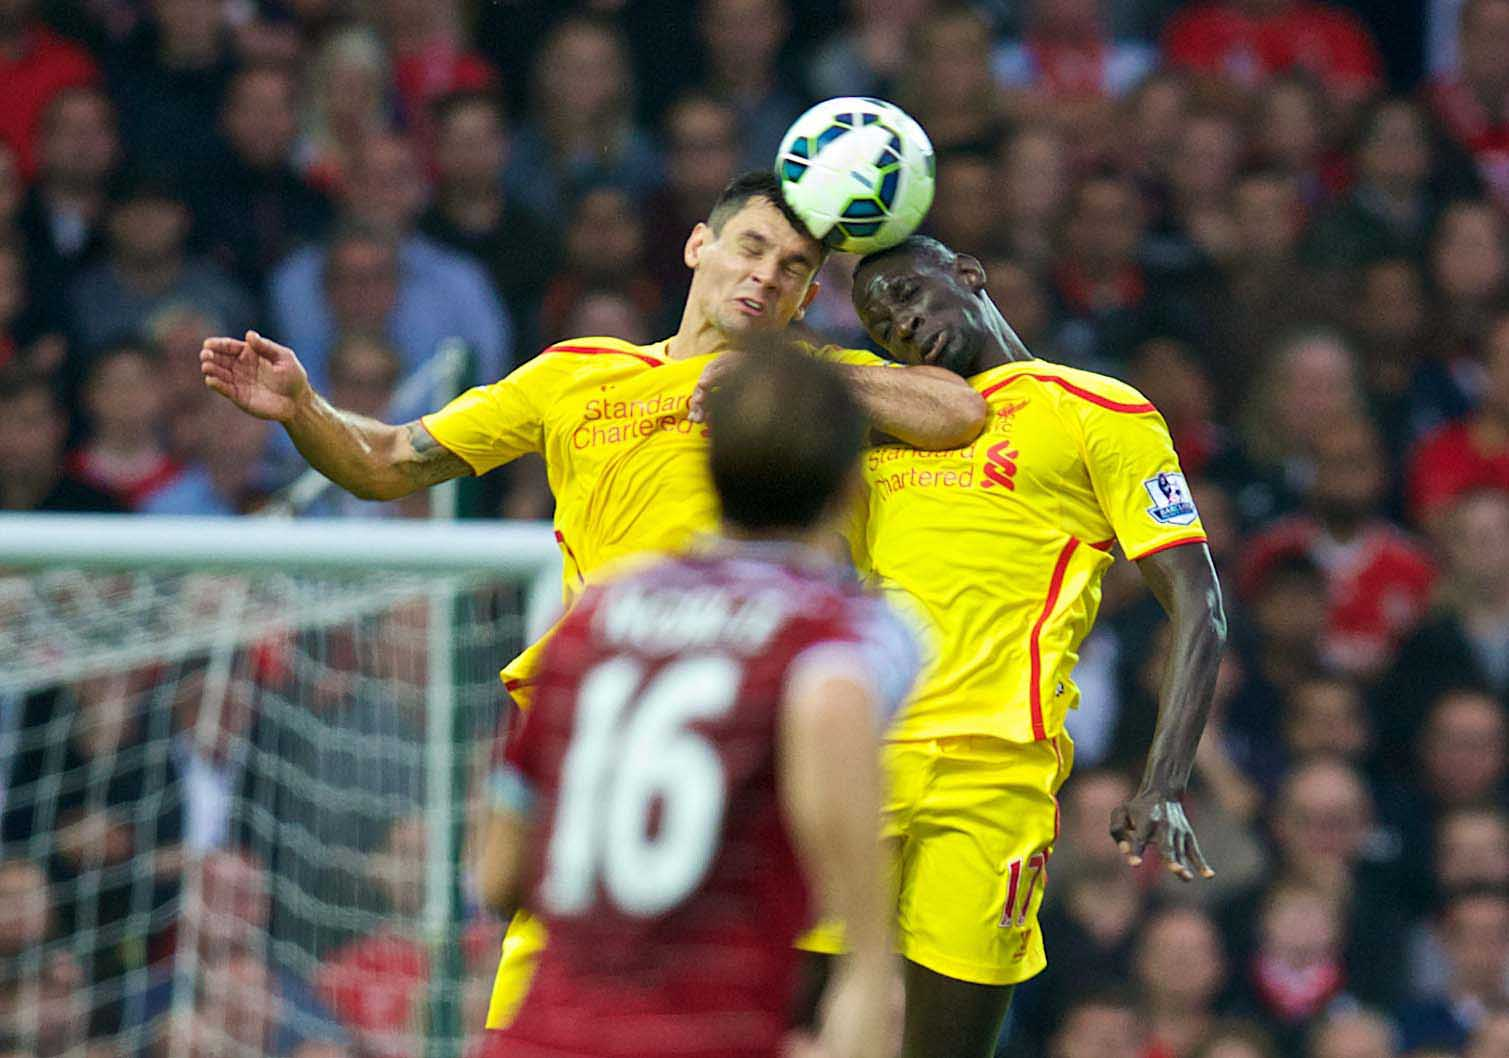 Football - FA Premier League - West Ham United FC v Liverpool FC